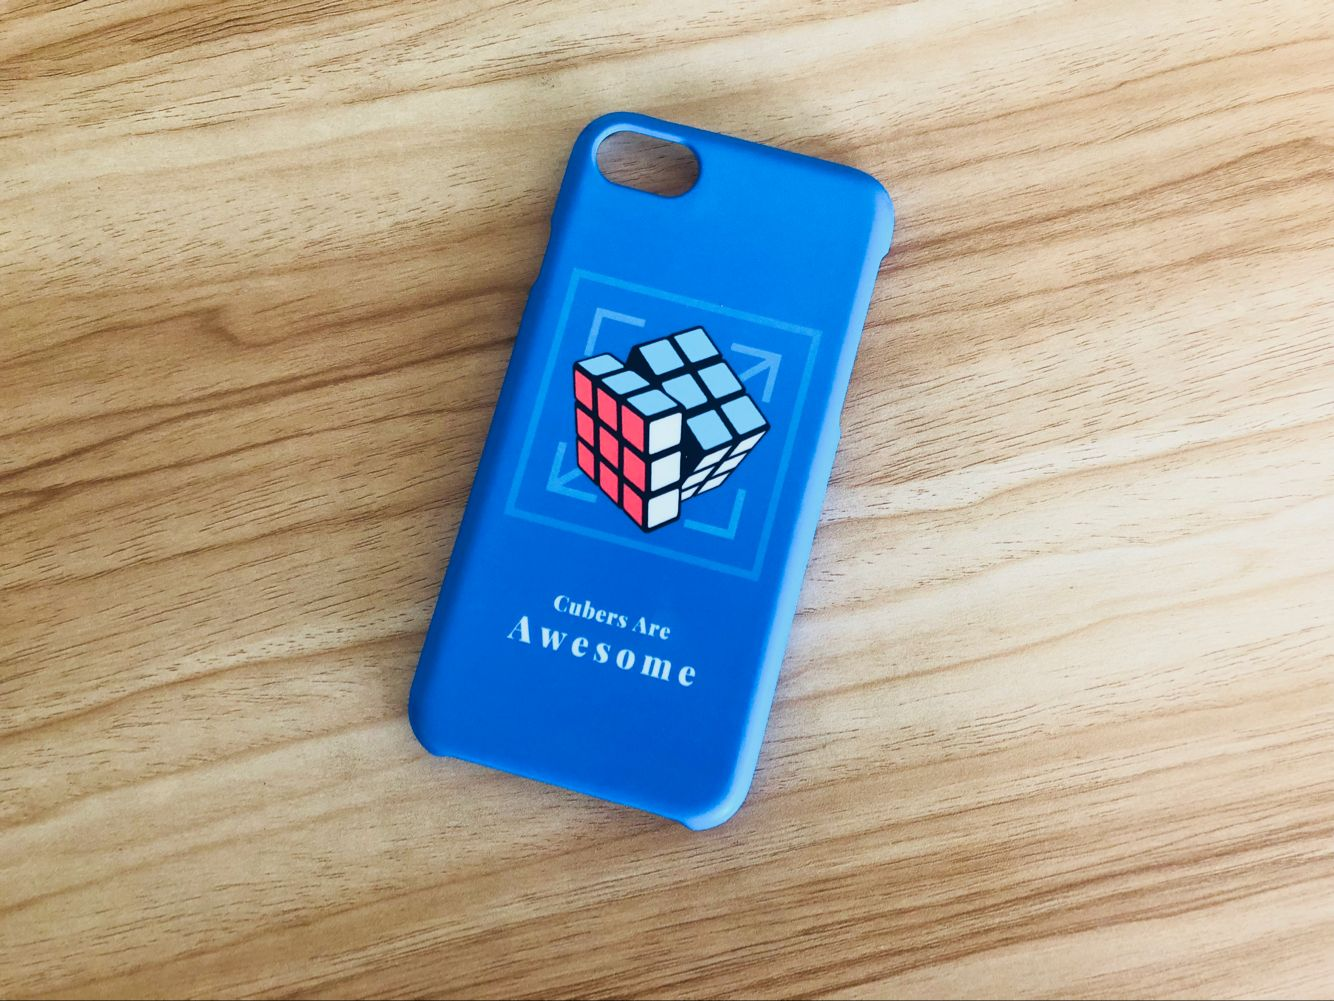 iPhone Case Solved 3x3